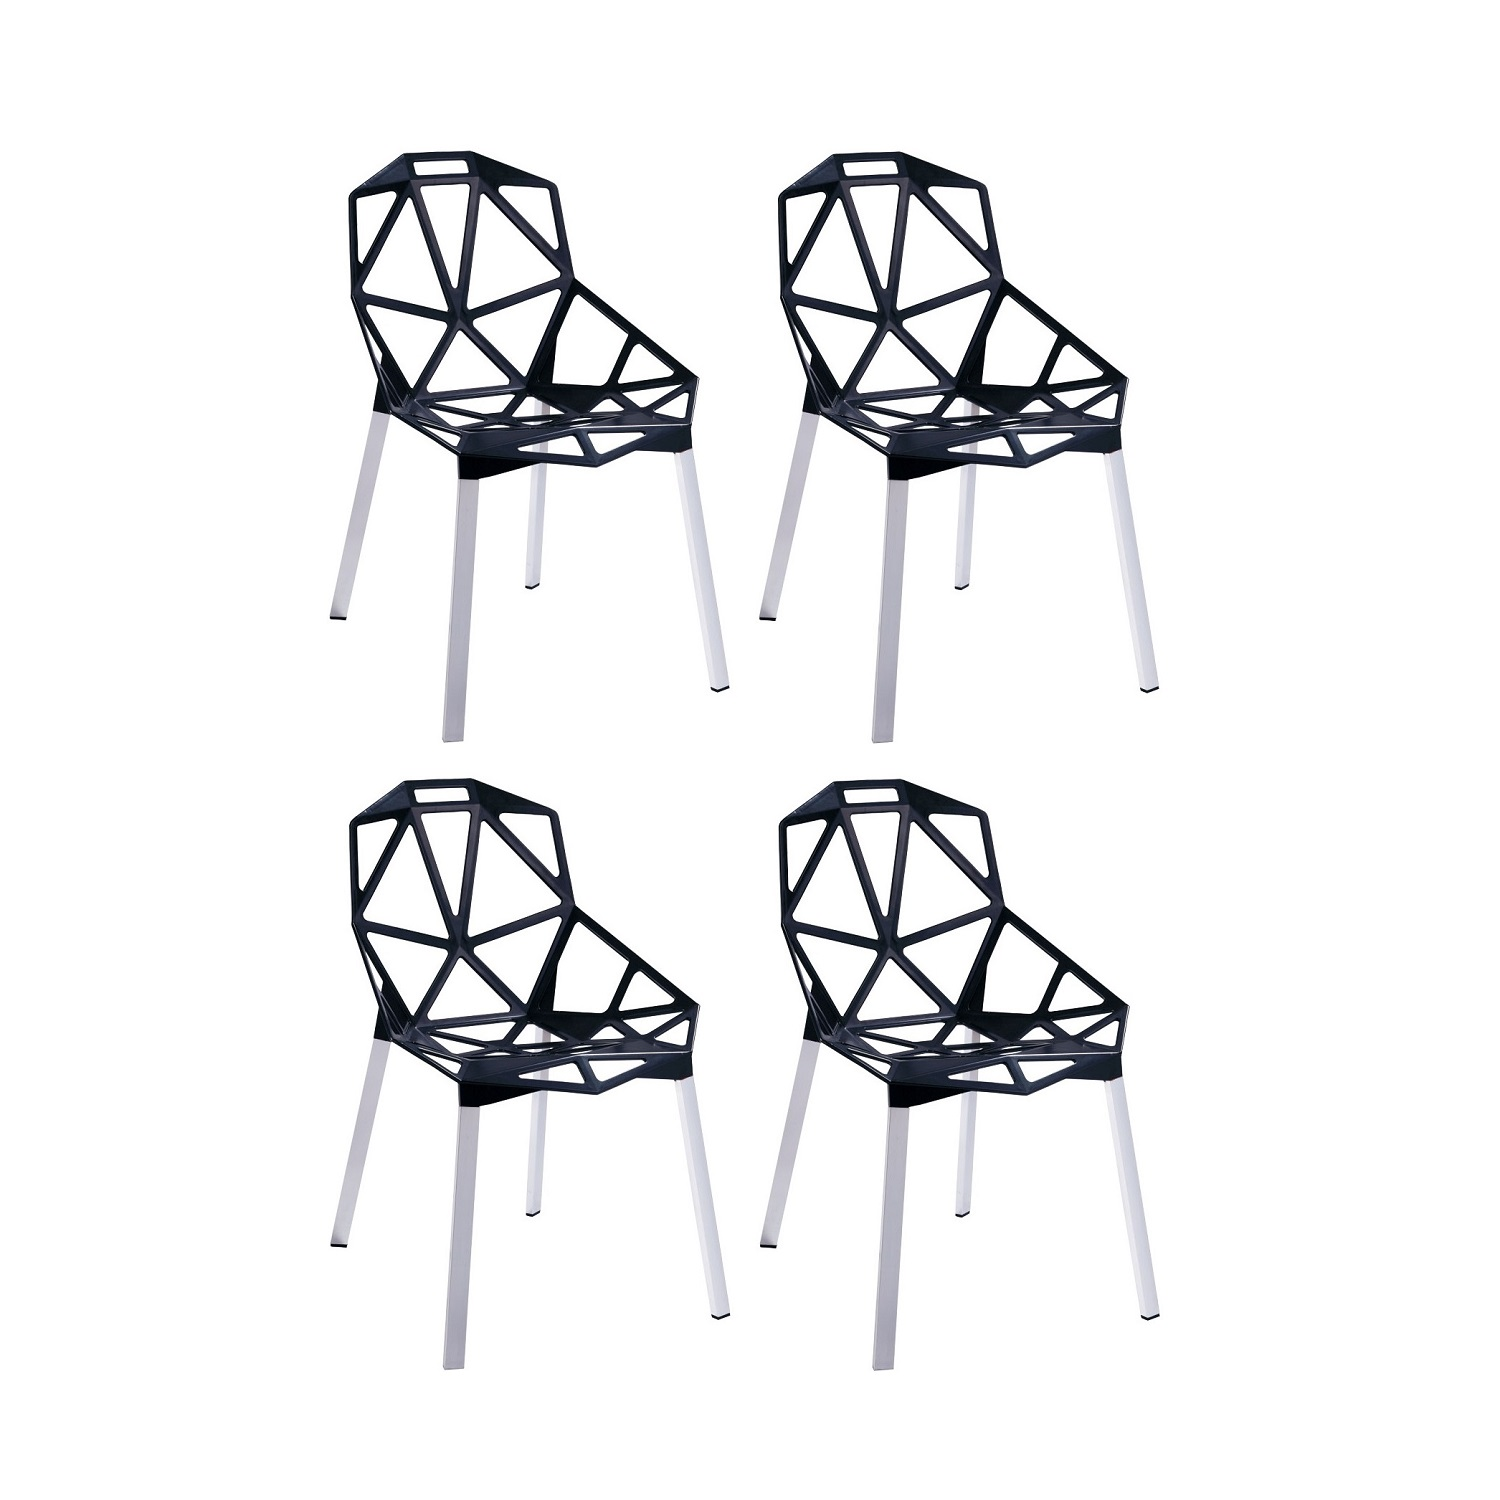 Konstantin Grcic Chair One Replica Konstantin Grcic Chair One Set Of 4 Place